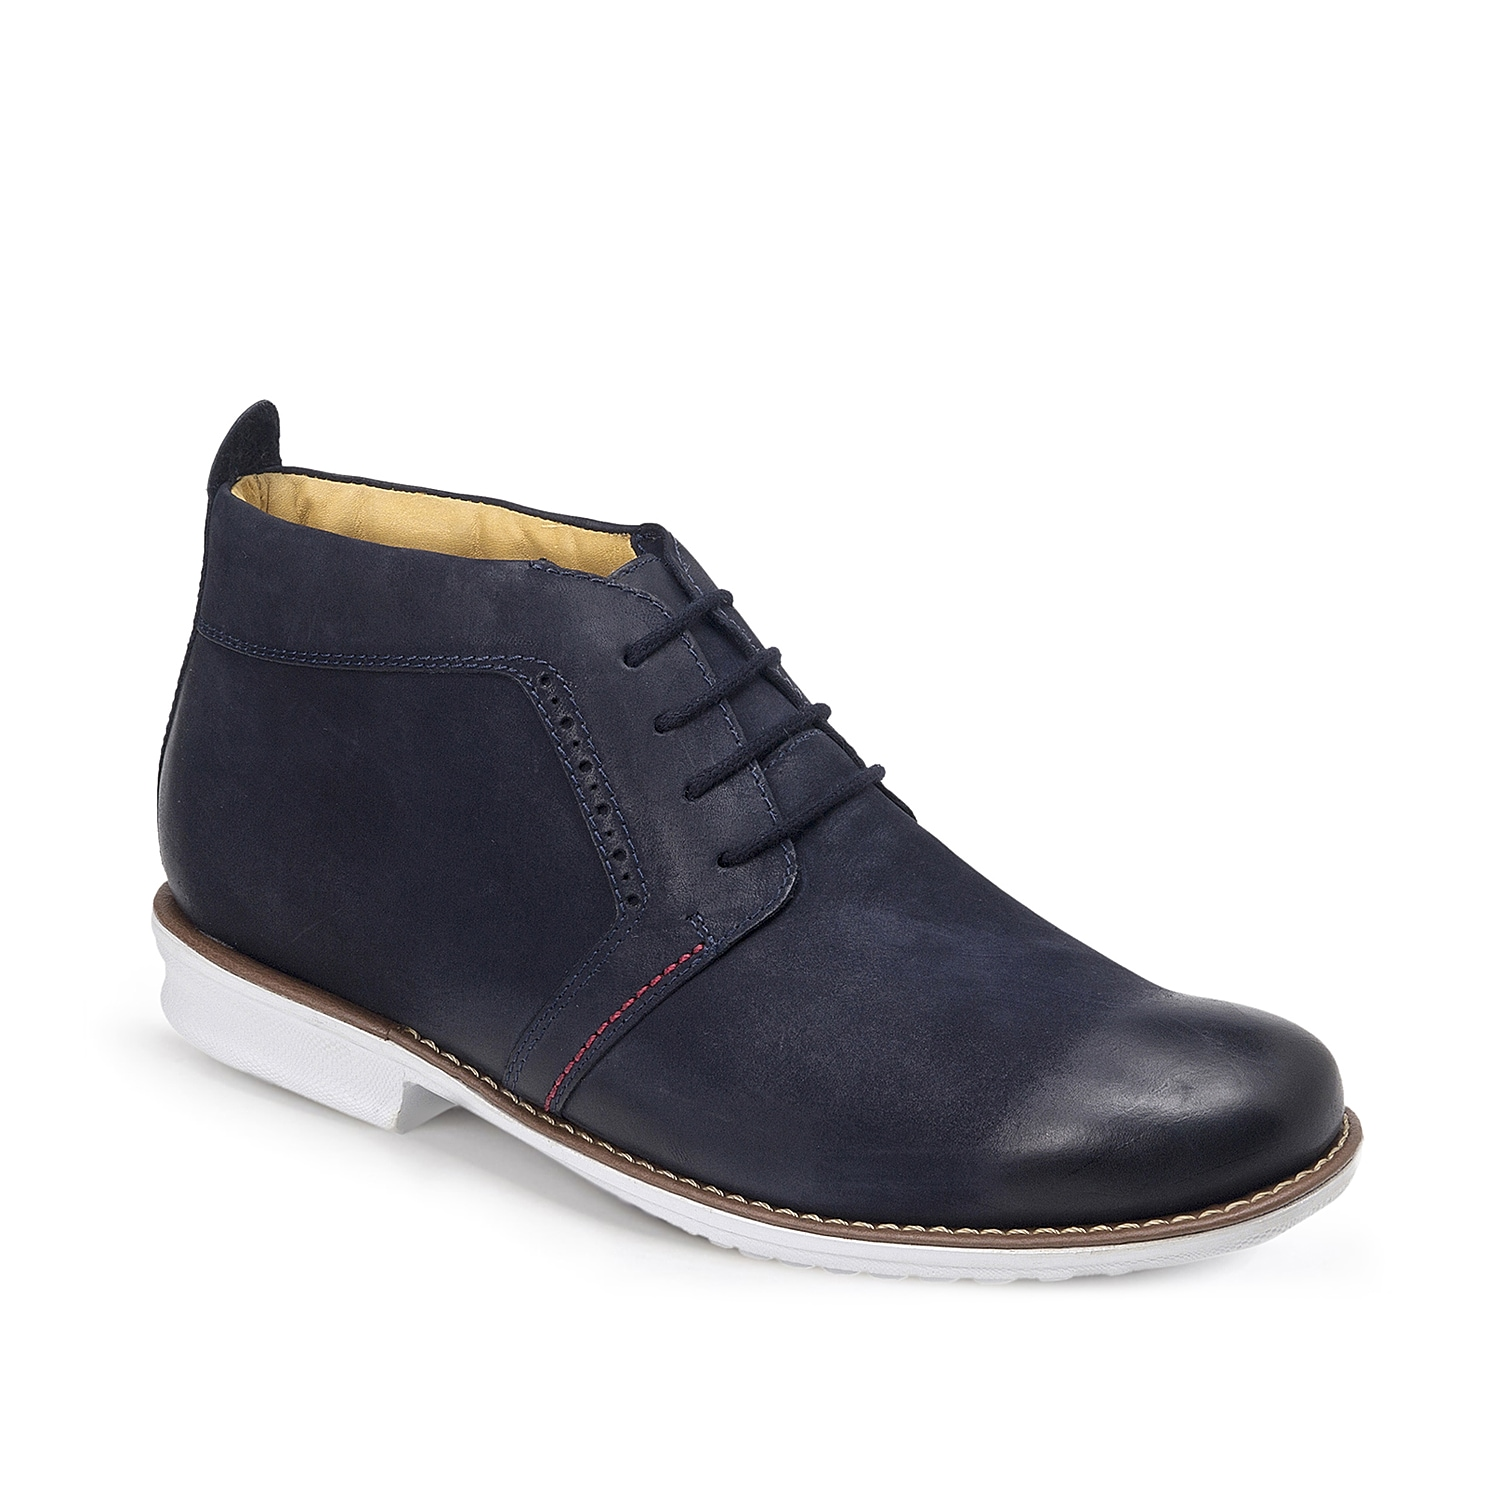 The Mauro chukka boot from Sandro Moscoloni will bring a fresh look to your shoe collection. This lace-up pair features smooth leather upper and subtle perforated accents for a handsome finishing touch!